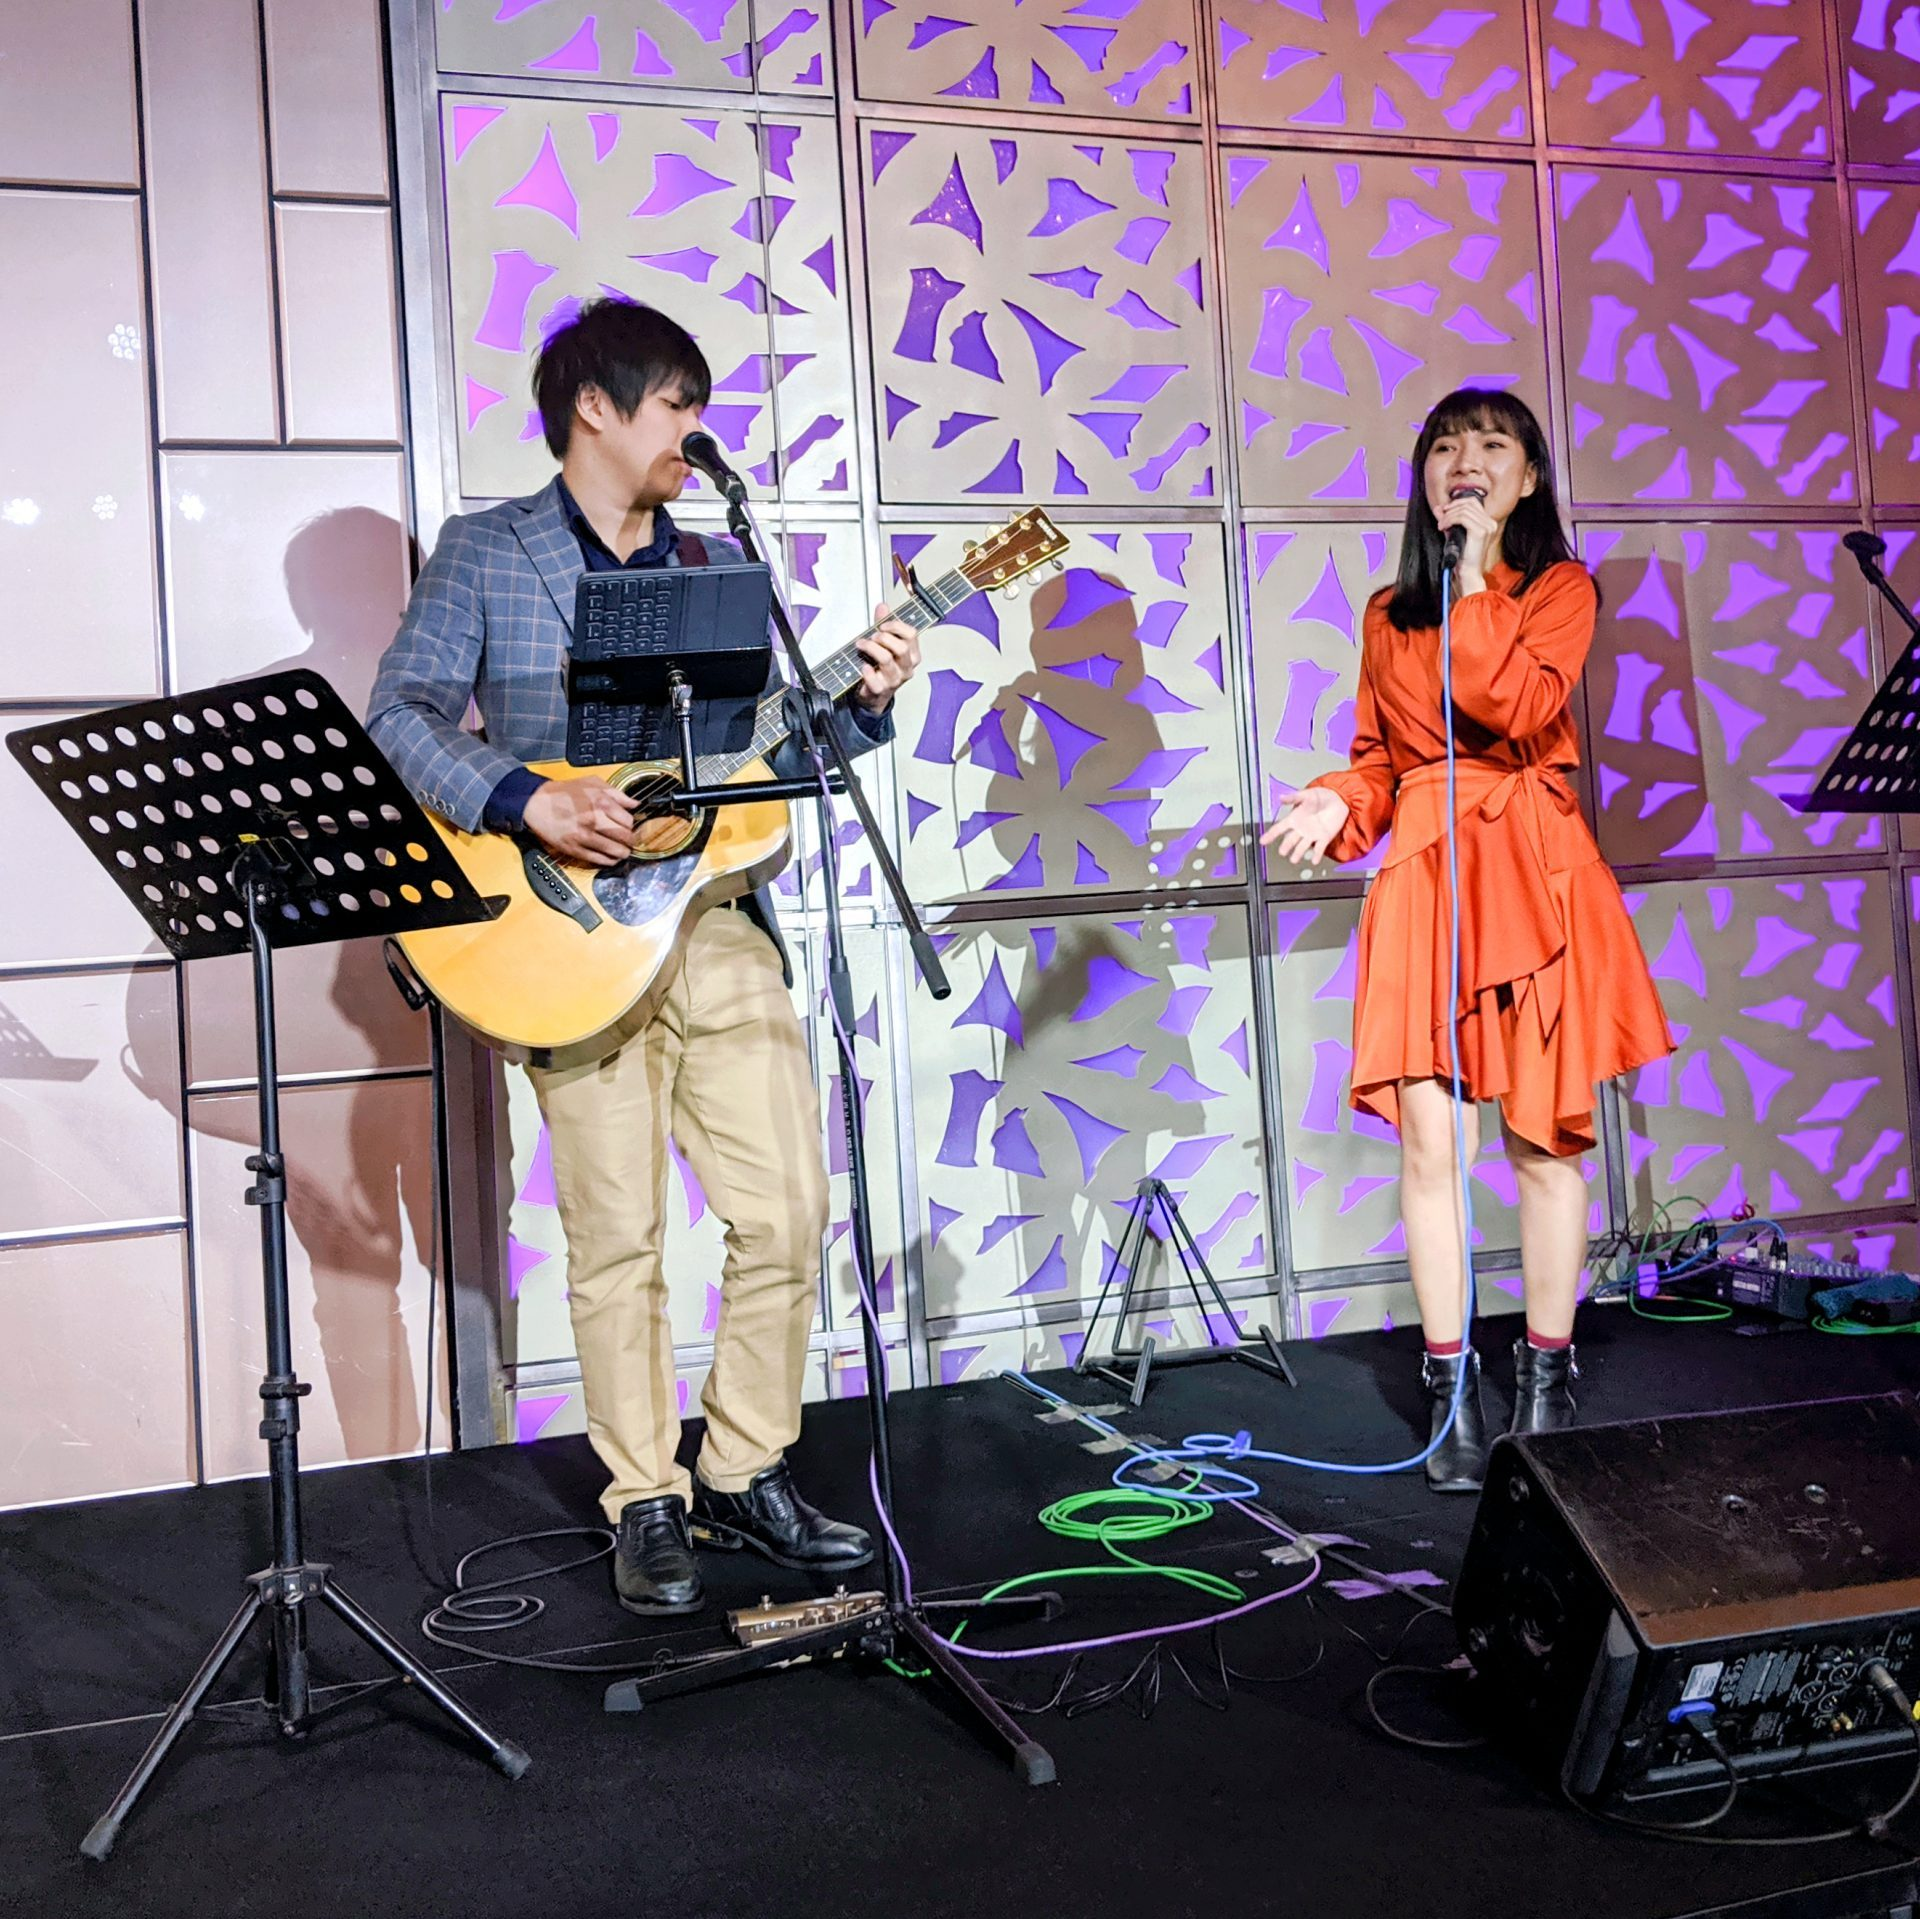 Mandarin Orchard Hotel Singapore Wedding Ballroom Stage Singer Live Band Music Emcee